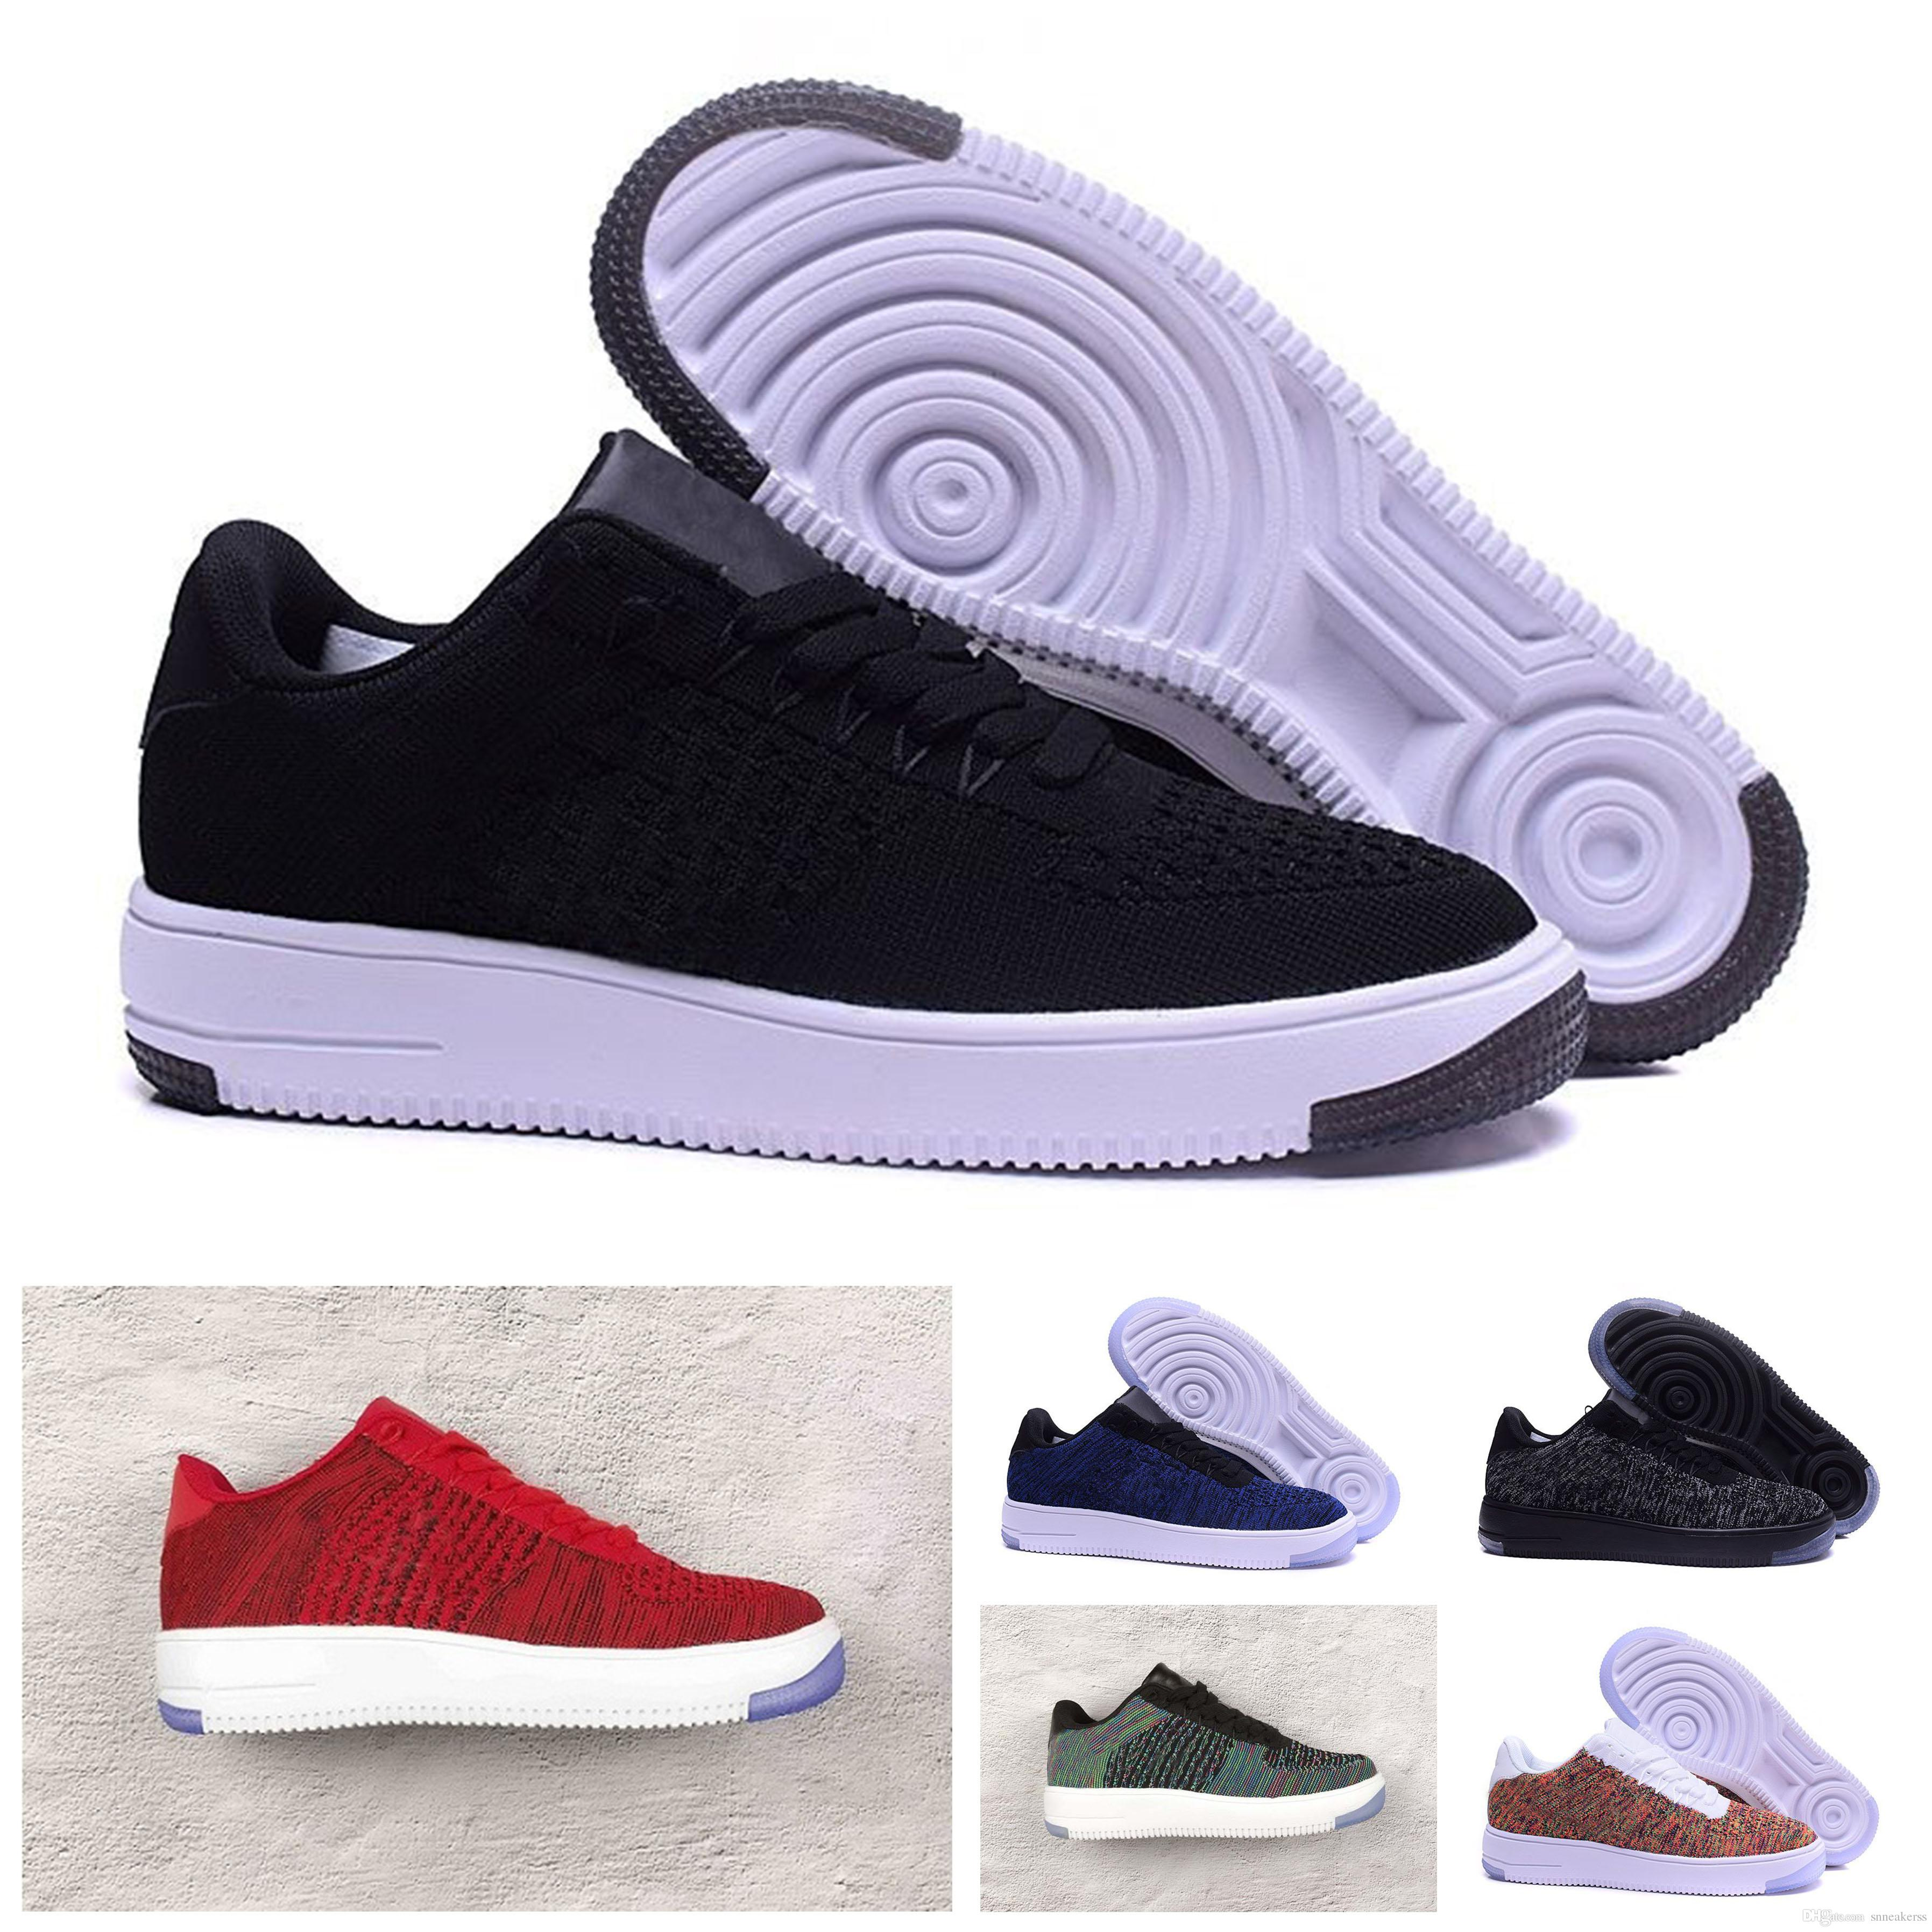 reputable site 8c3ab 91ccc Acheter Nike Air Force 1 Flyknit Af1 Trainers Running Shoes 2018 Casual  Shoes Nouveau Style Ligne Mouche Hommes Femmes Force High Low Lover  Skateboard ...